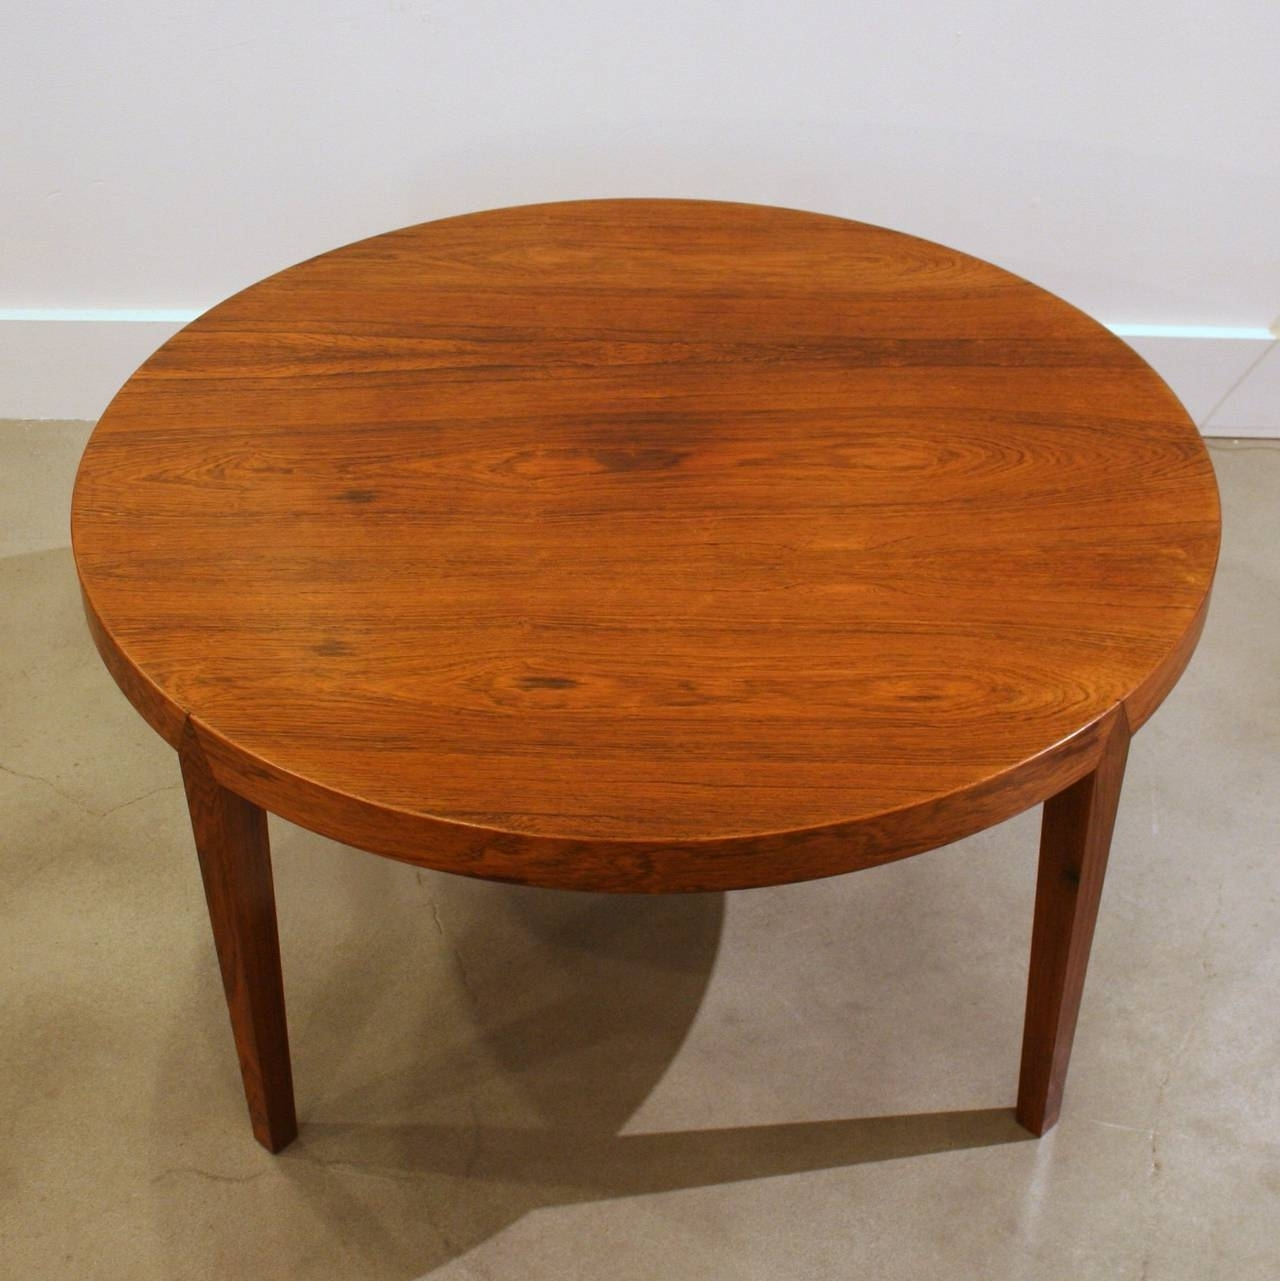 Making Teak Round Coffee Table — New Home Design In 2017 Round Teak Coffee Tables (View 9 of 20)